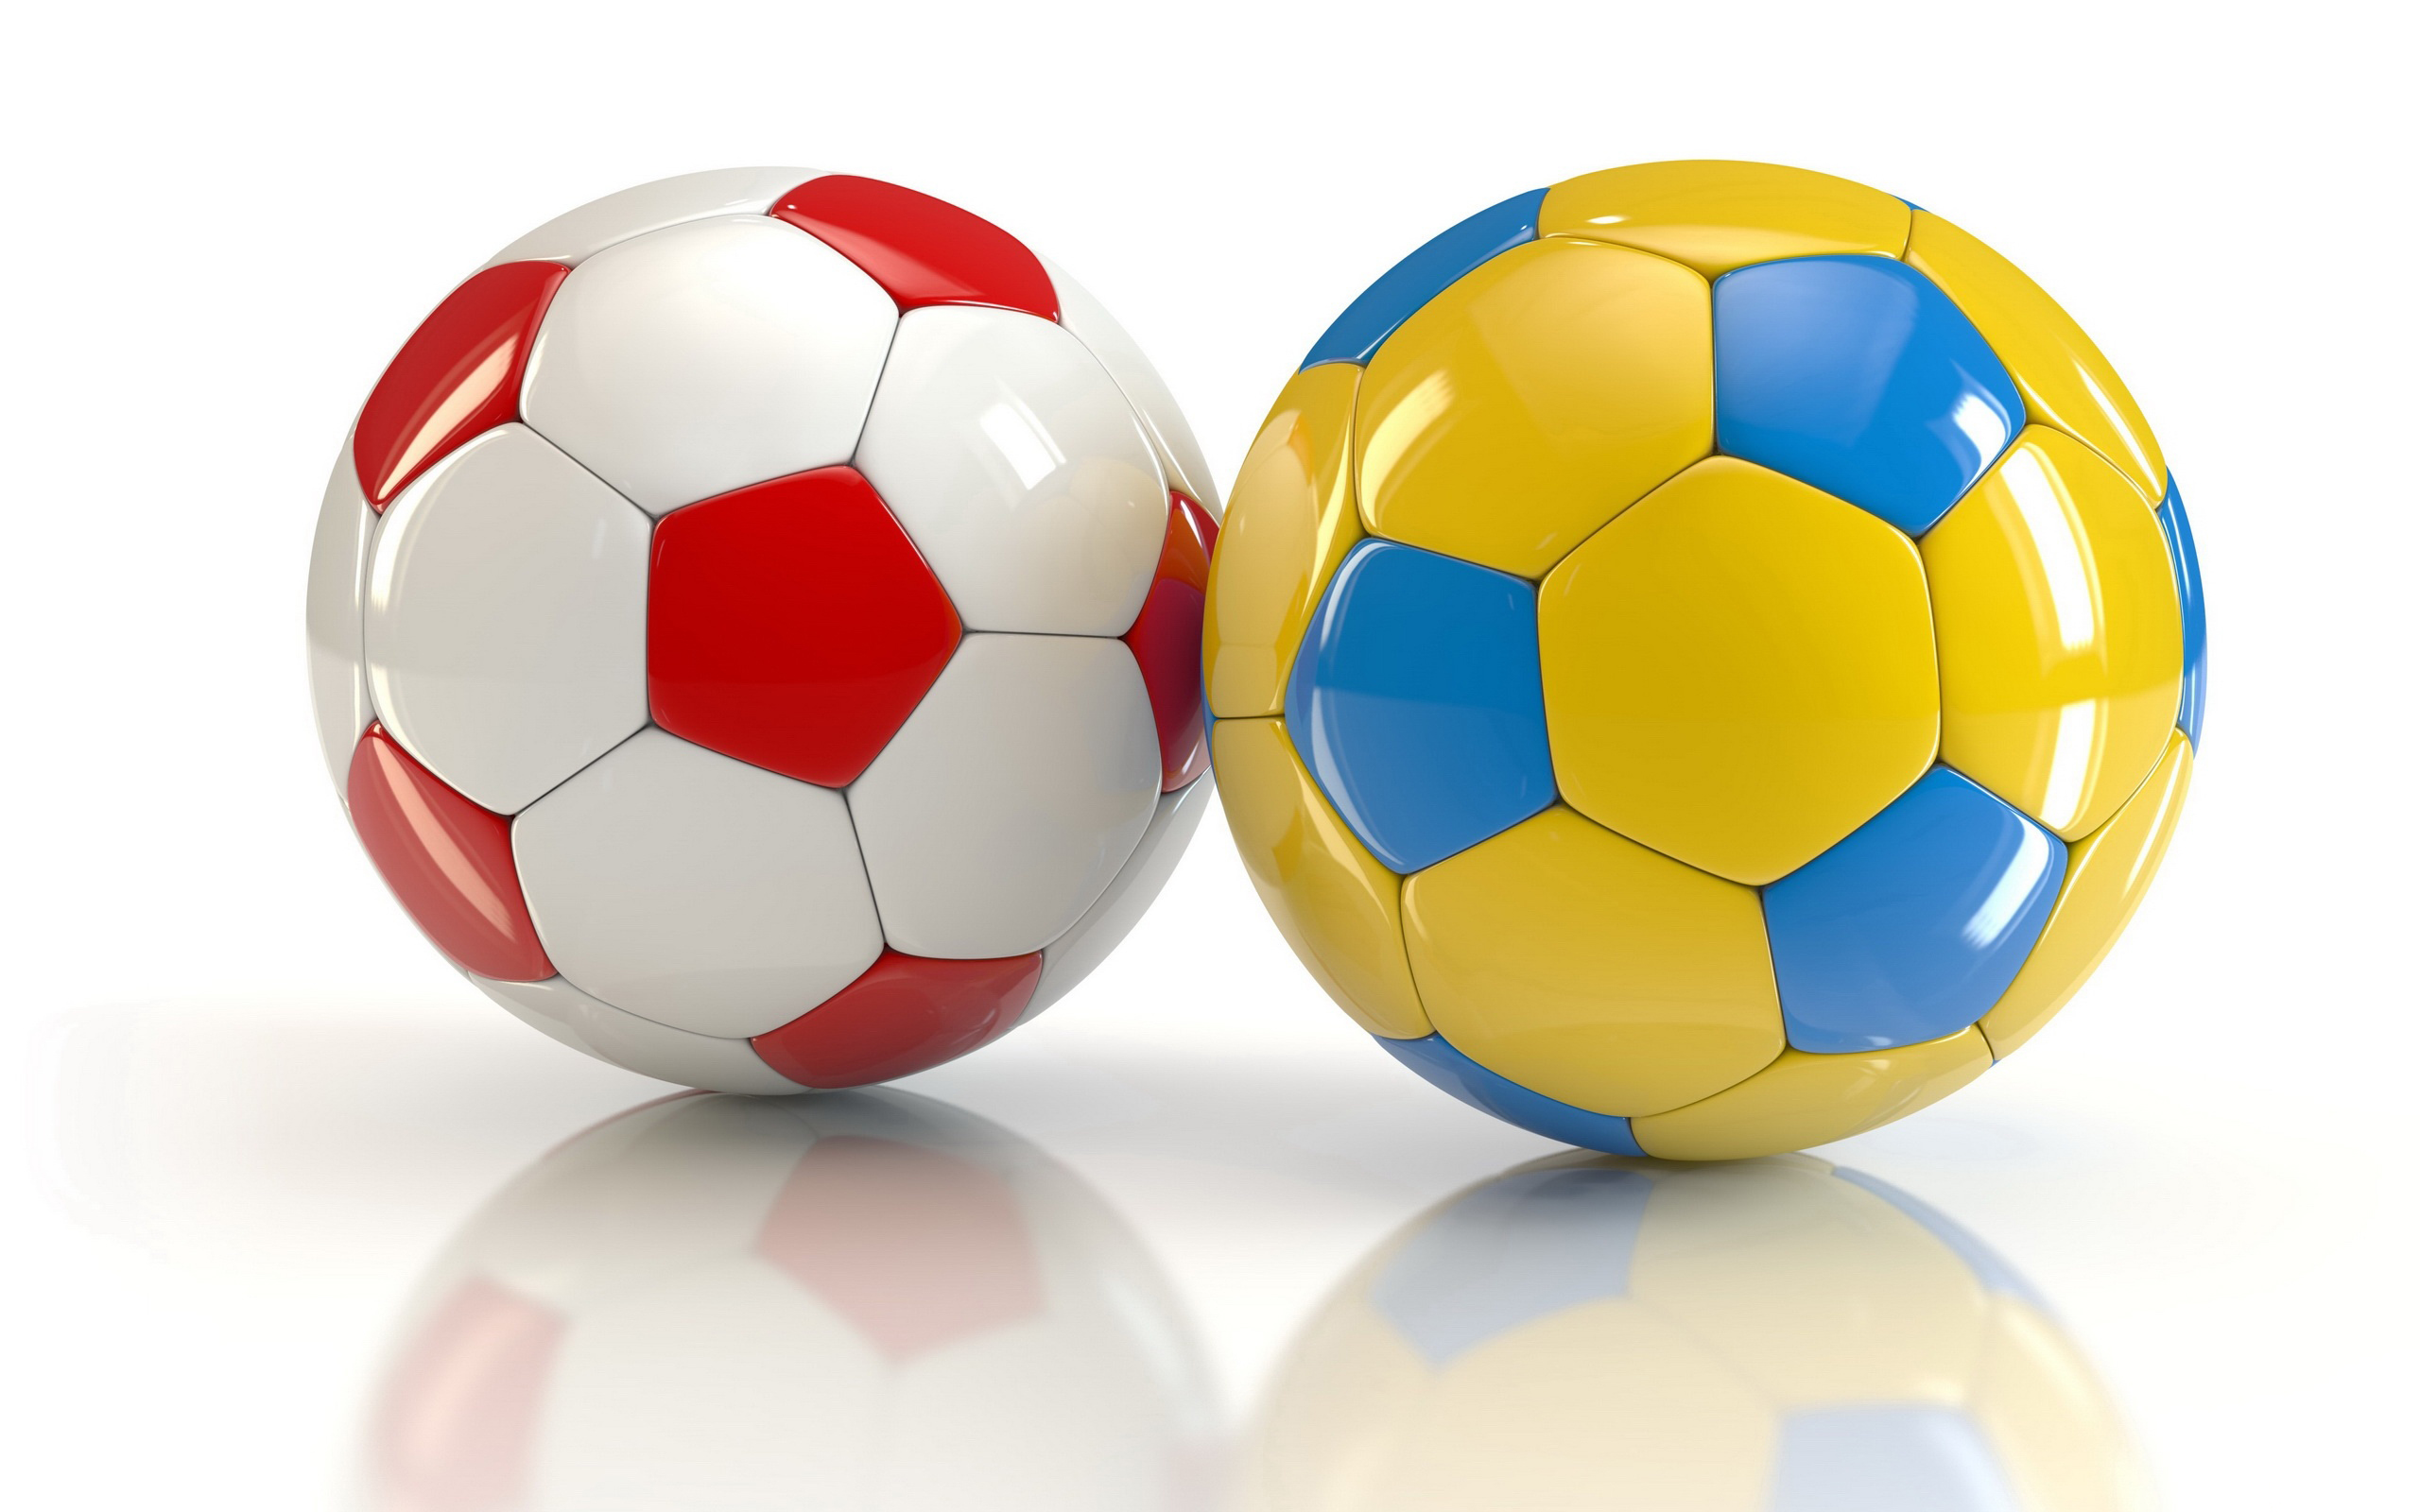 Sports Background Clip Art: All Sports Backgrounds